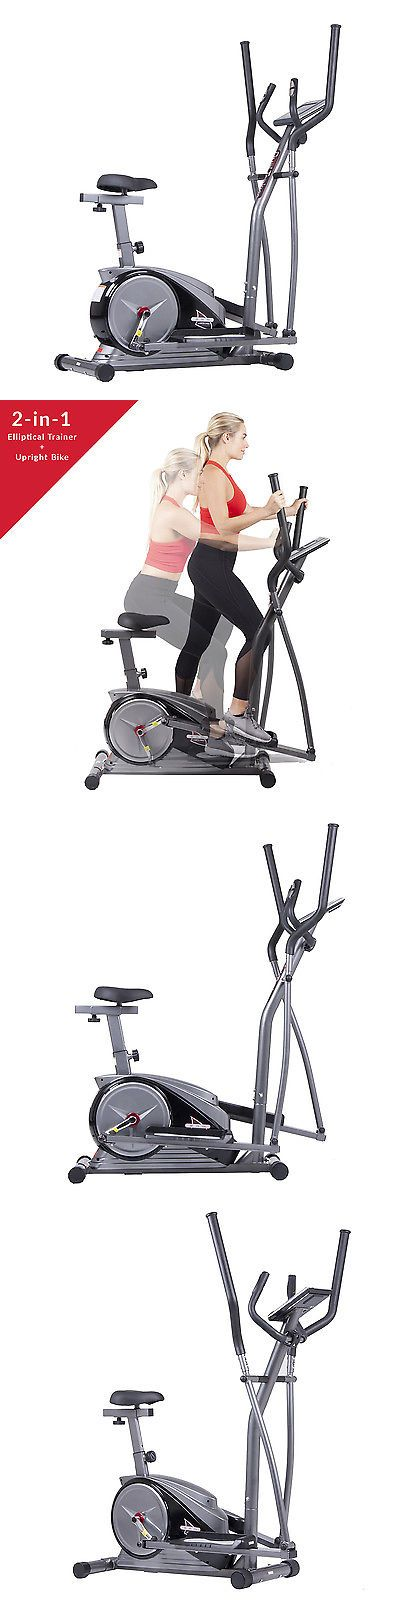 Ellipticals 72602: 2-In-1 Elliptical Trainer And Fitness Bike - Hybrid By Body Champ -> BUY IT NOW ONLY: $198 on eBay!